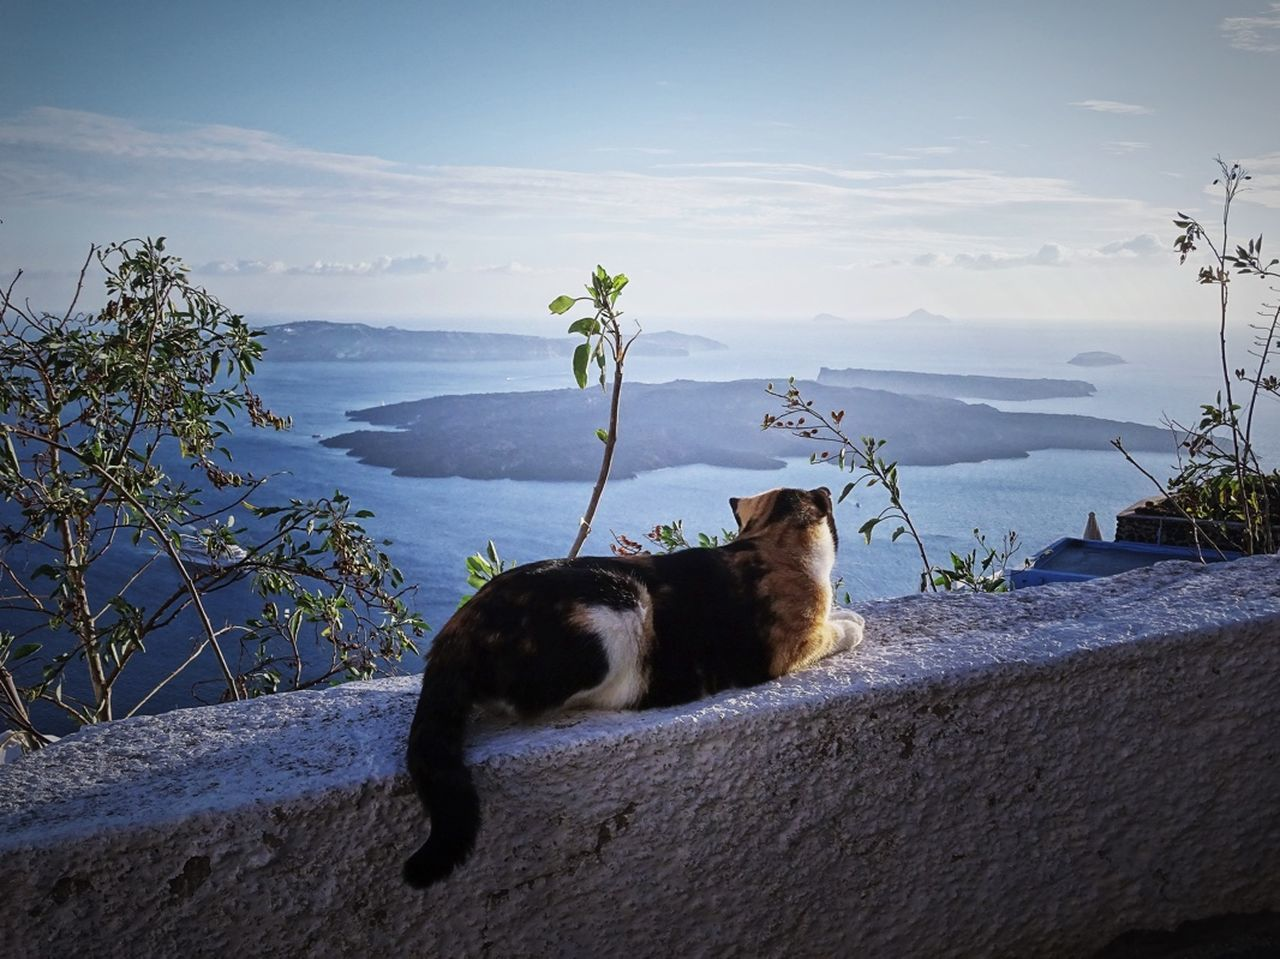 domestic animals, pets, animal themes, one animal, mammal, sky, no people, domestic cat, outdoors, nature, plant, sitting, mountain, day, growth, feline, beauty in nature, water